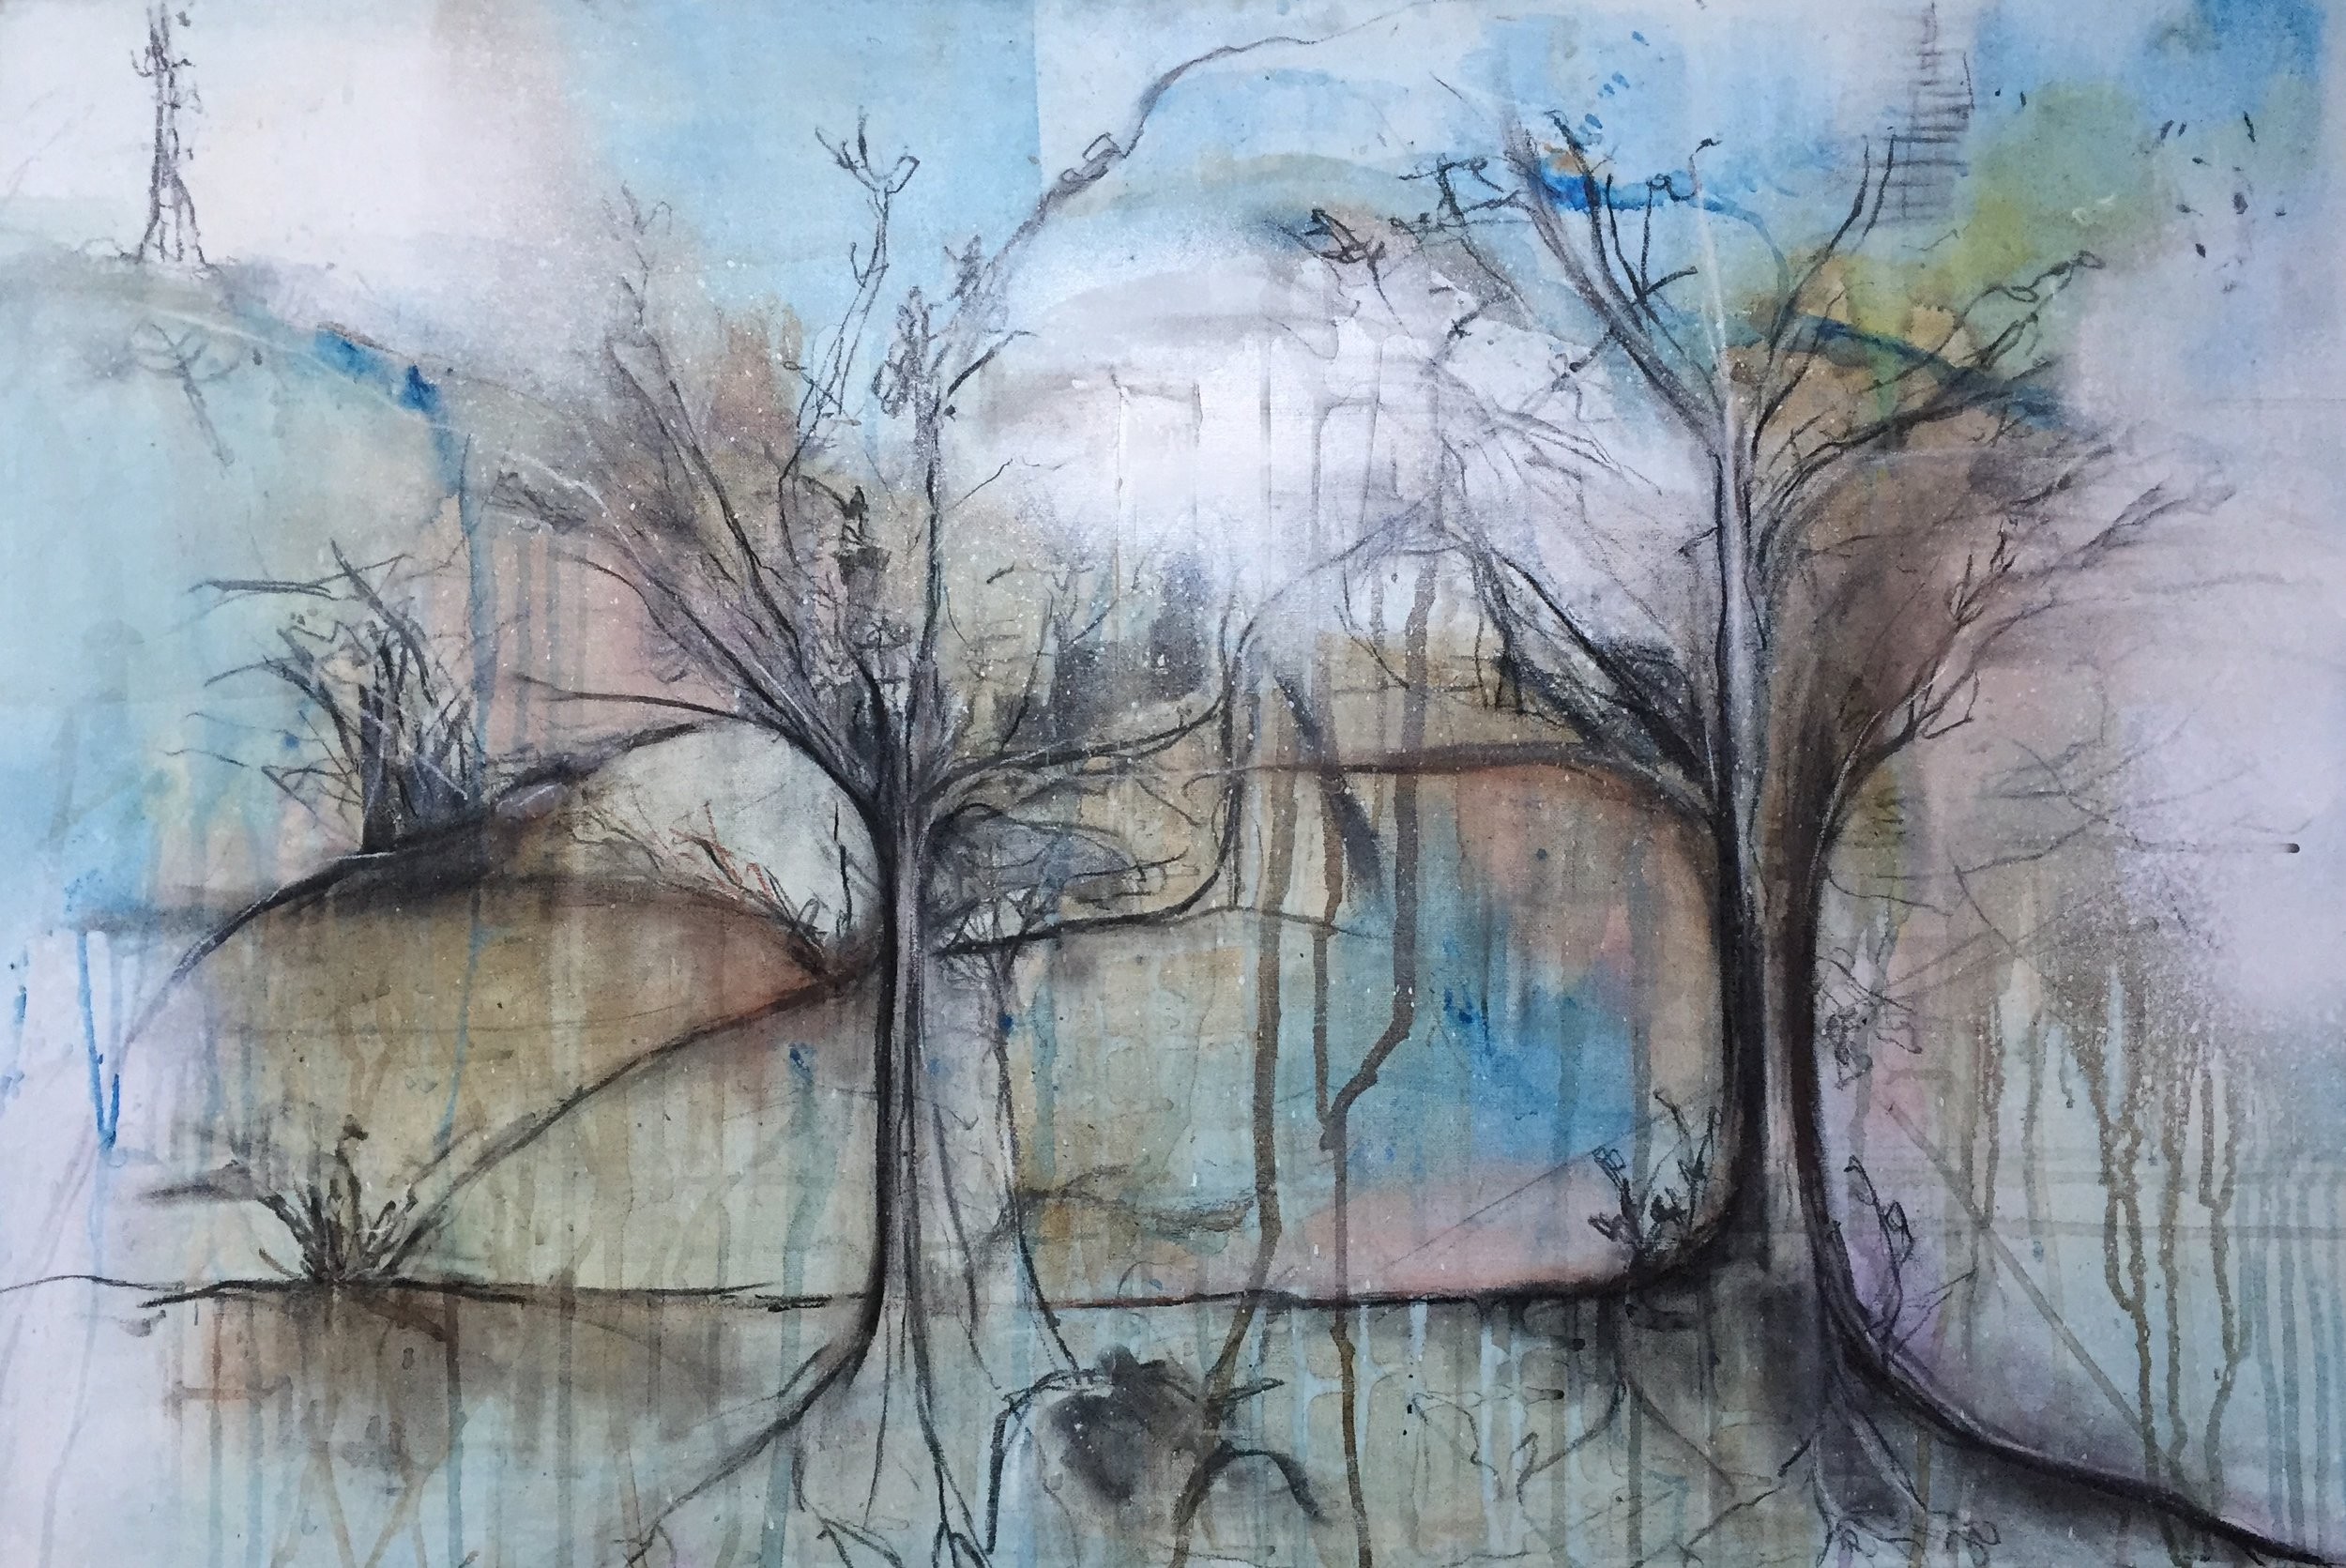 'Two Lovers' 90cm x 60cm Mixed Media on Canvas